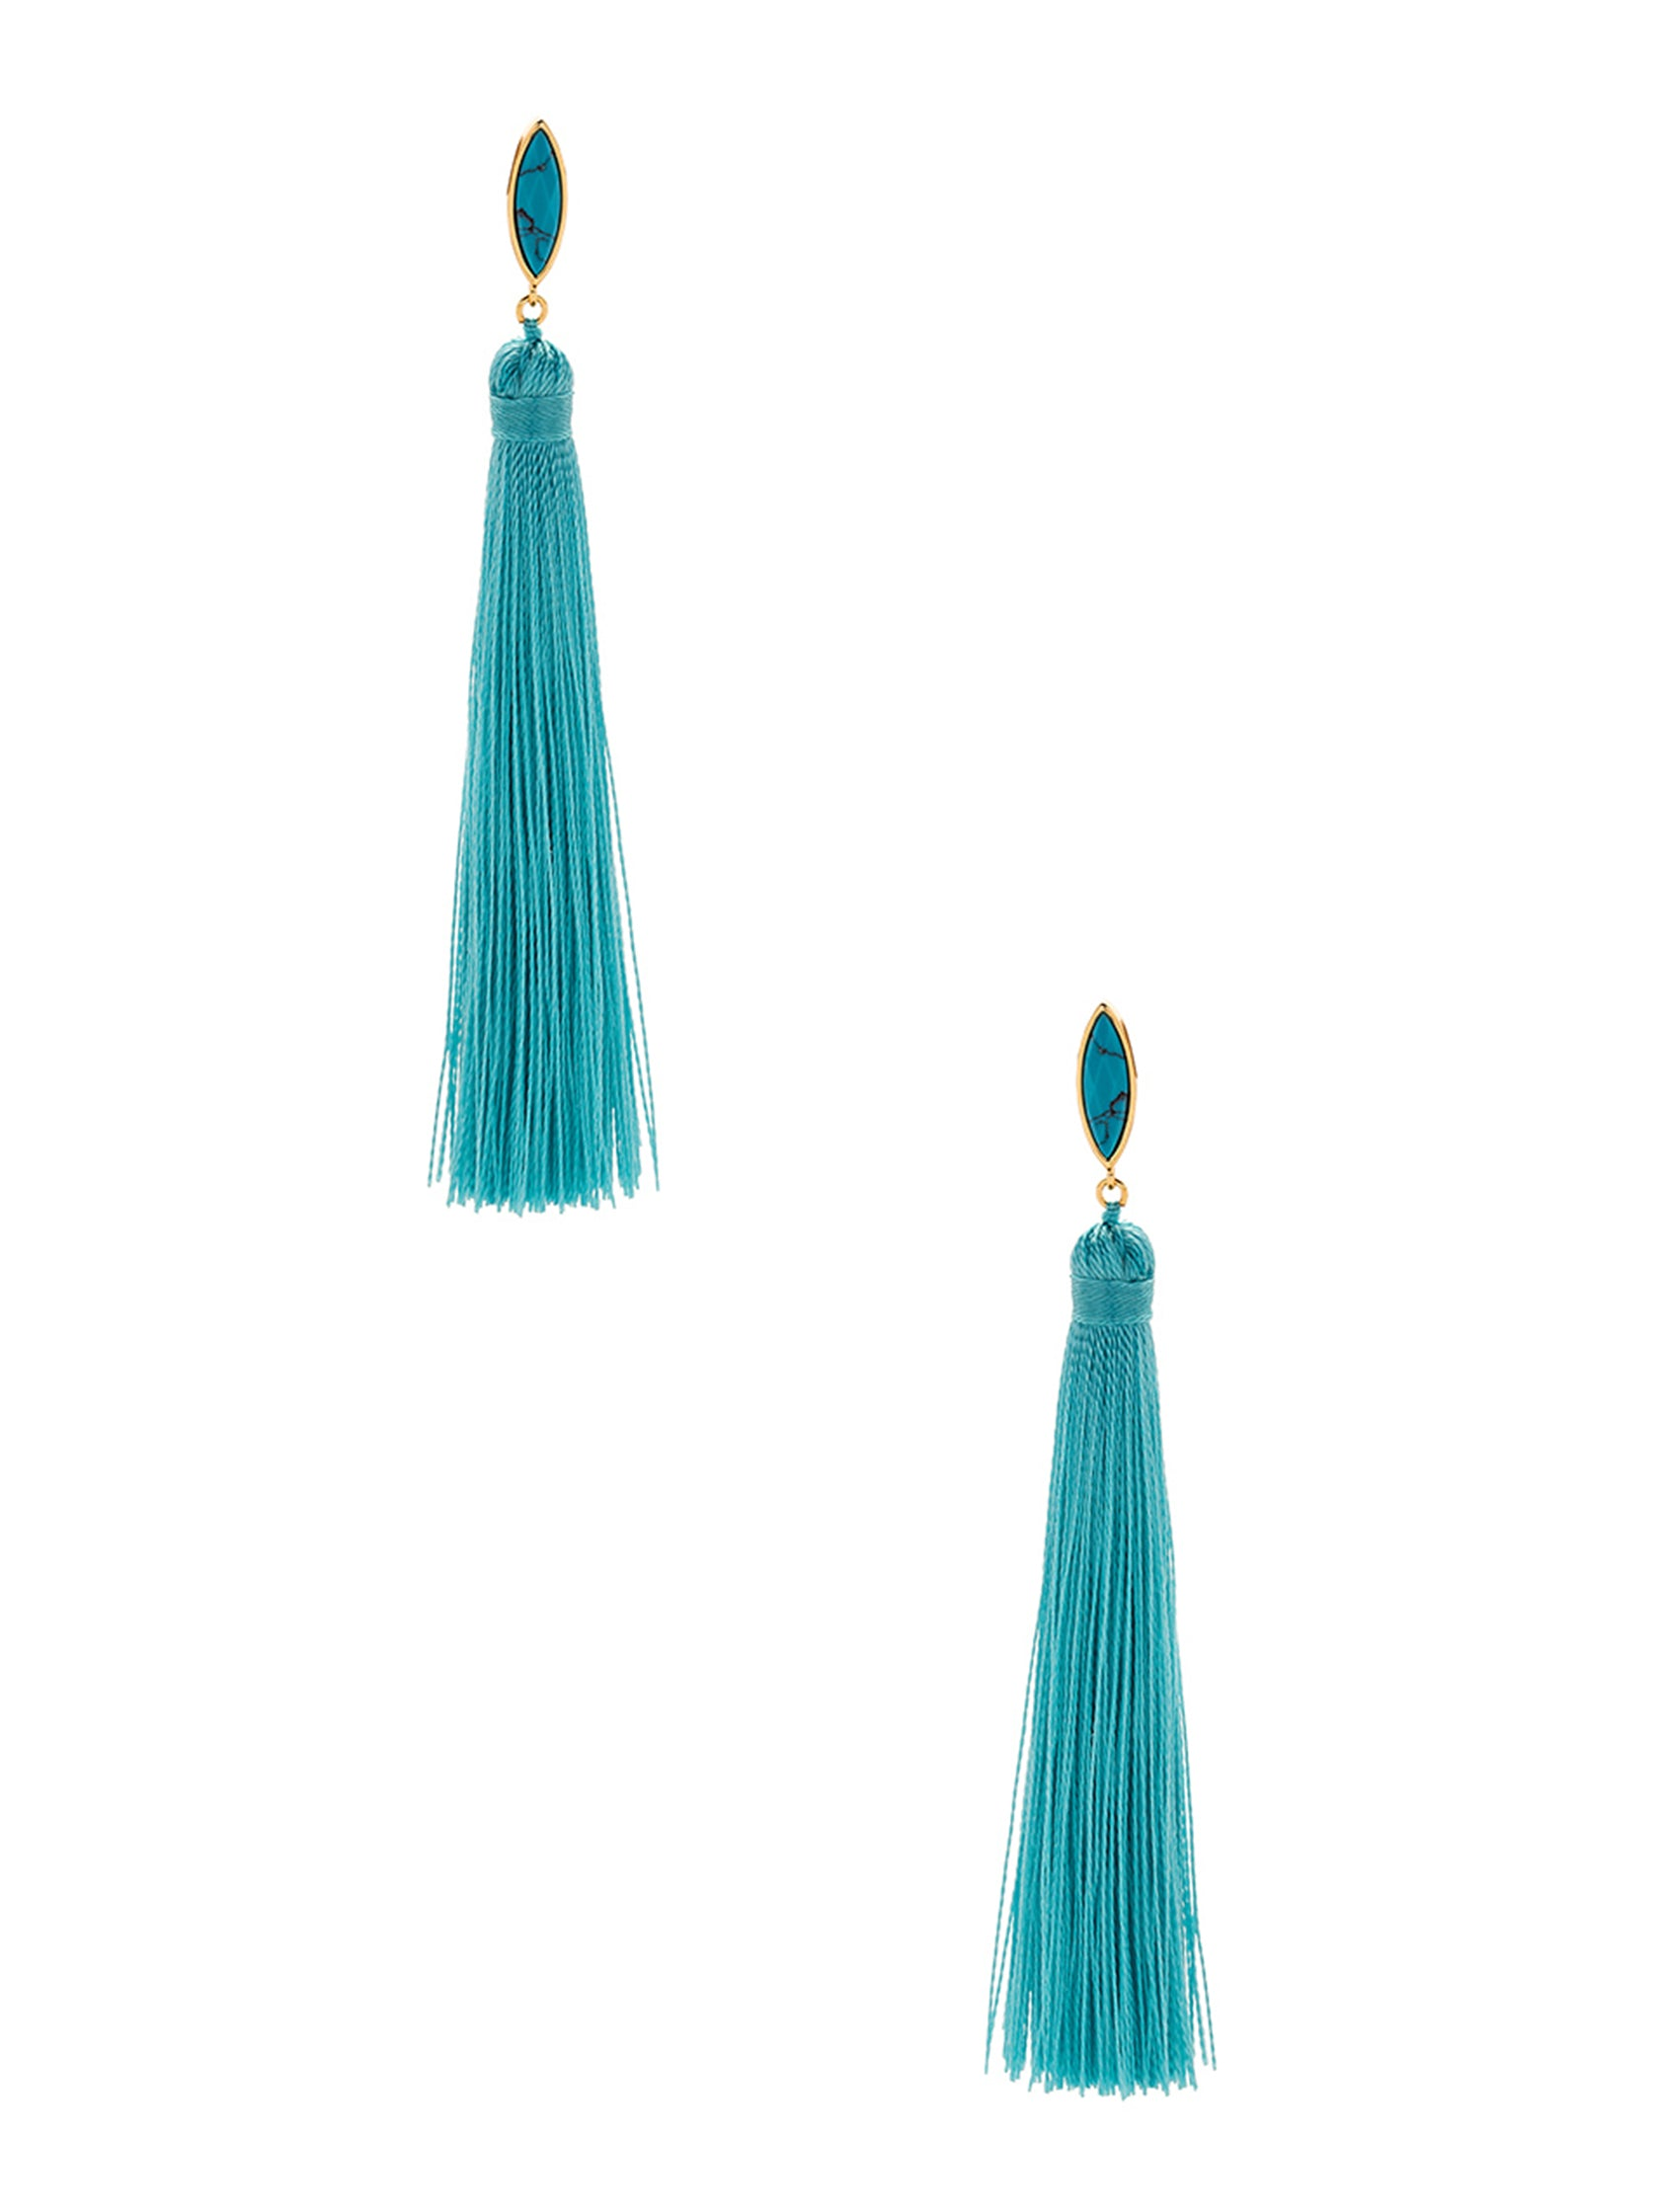 Woman wearing a earrings rental from Gorjana called Palisades Tassel Earrings